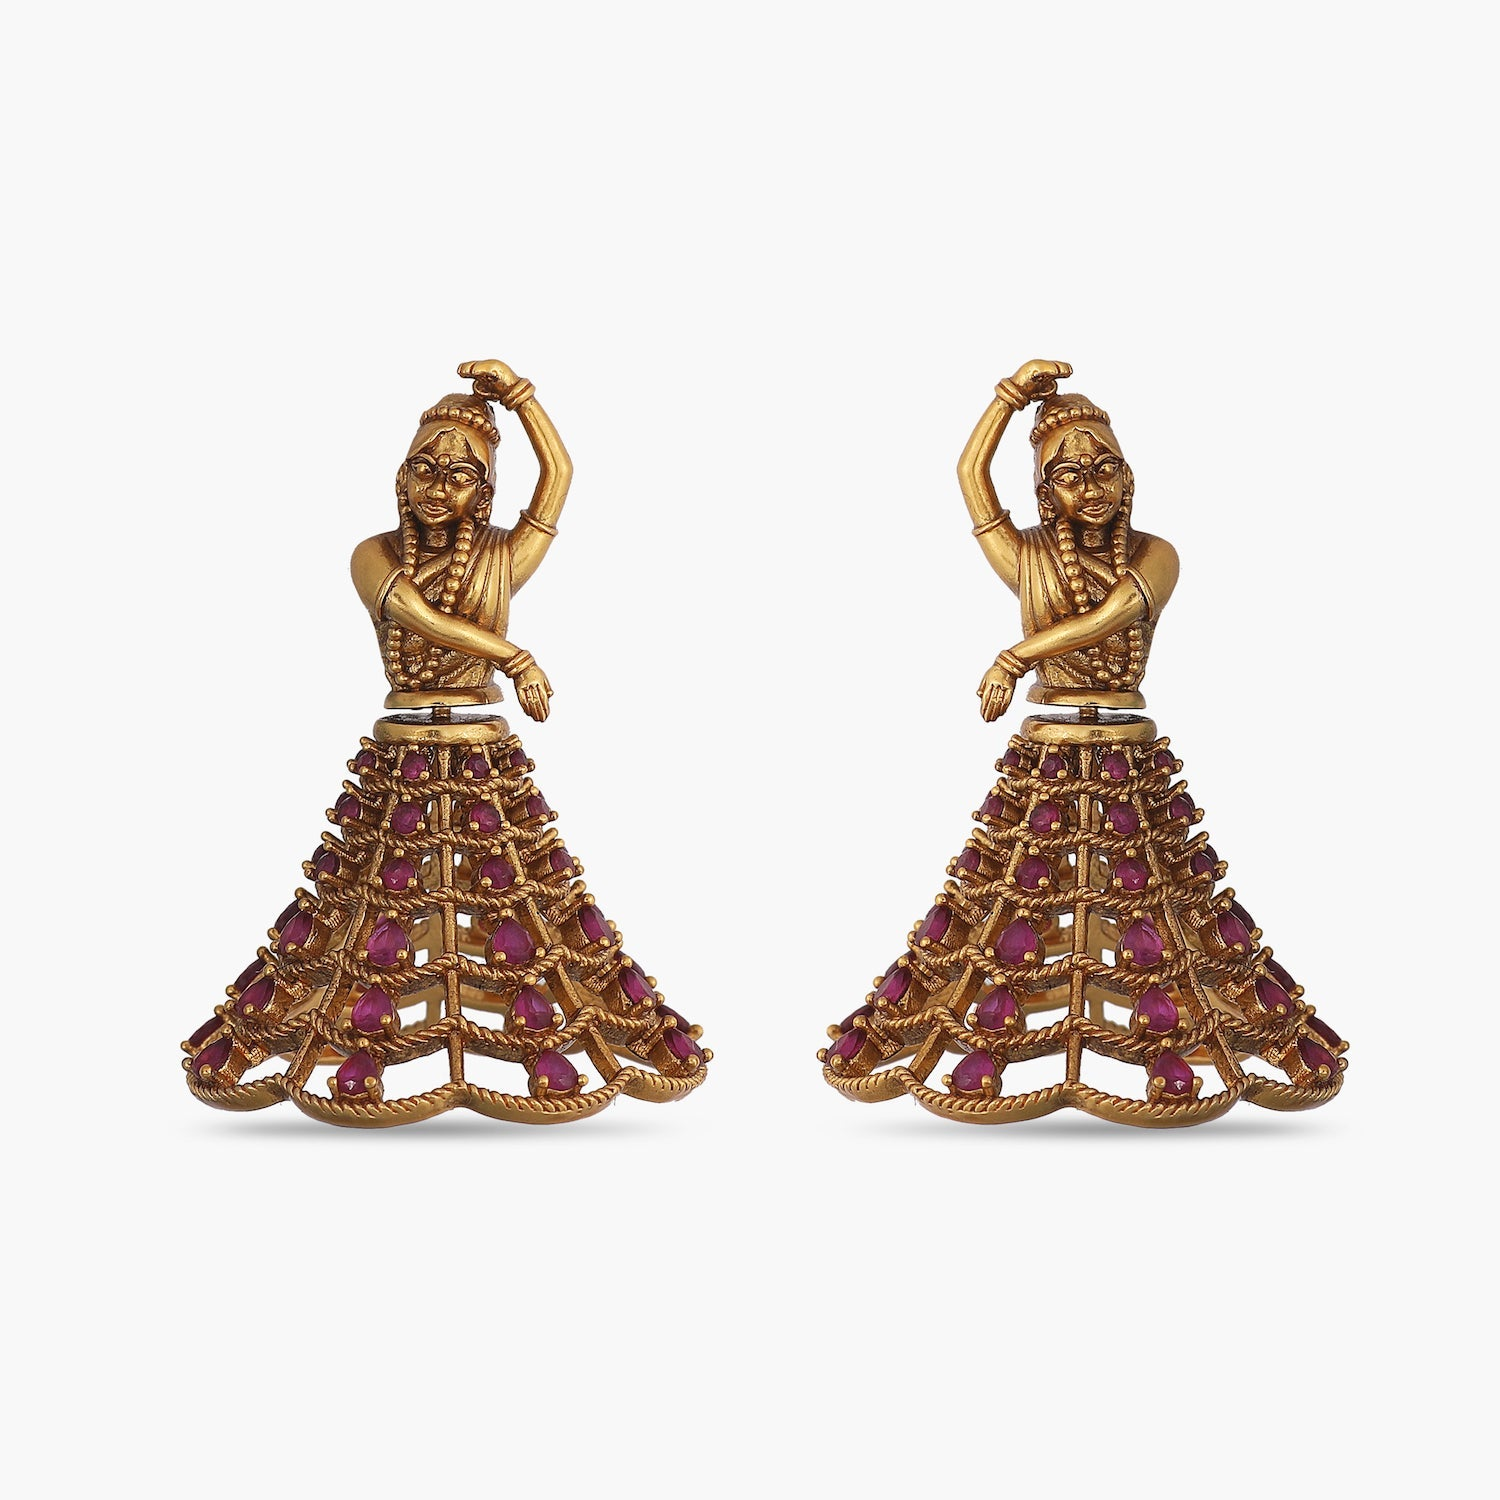 Dancing Lady Antique Earrings